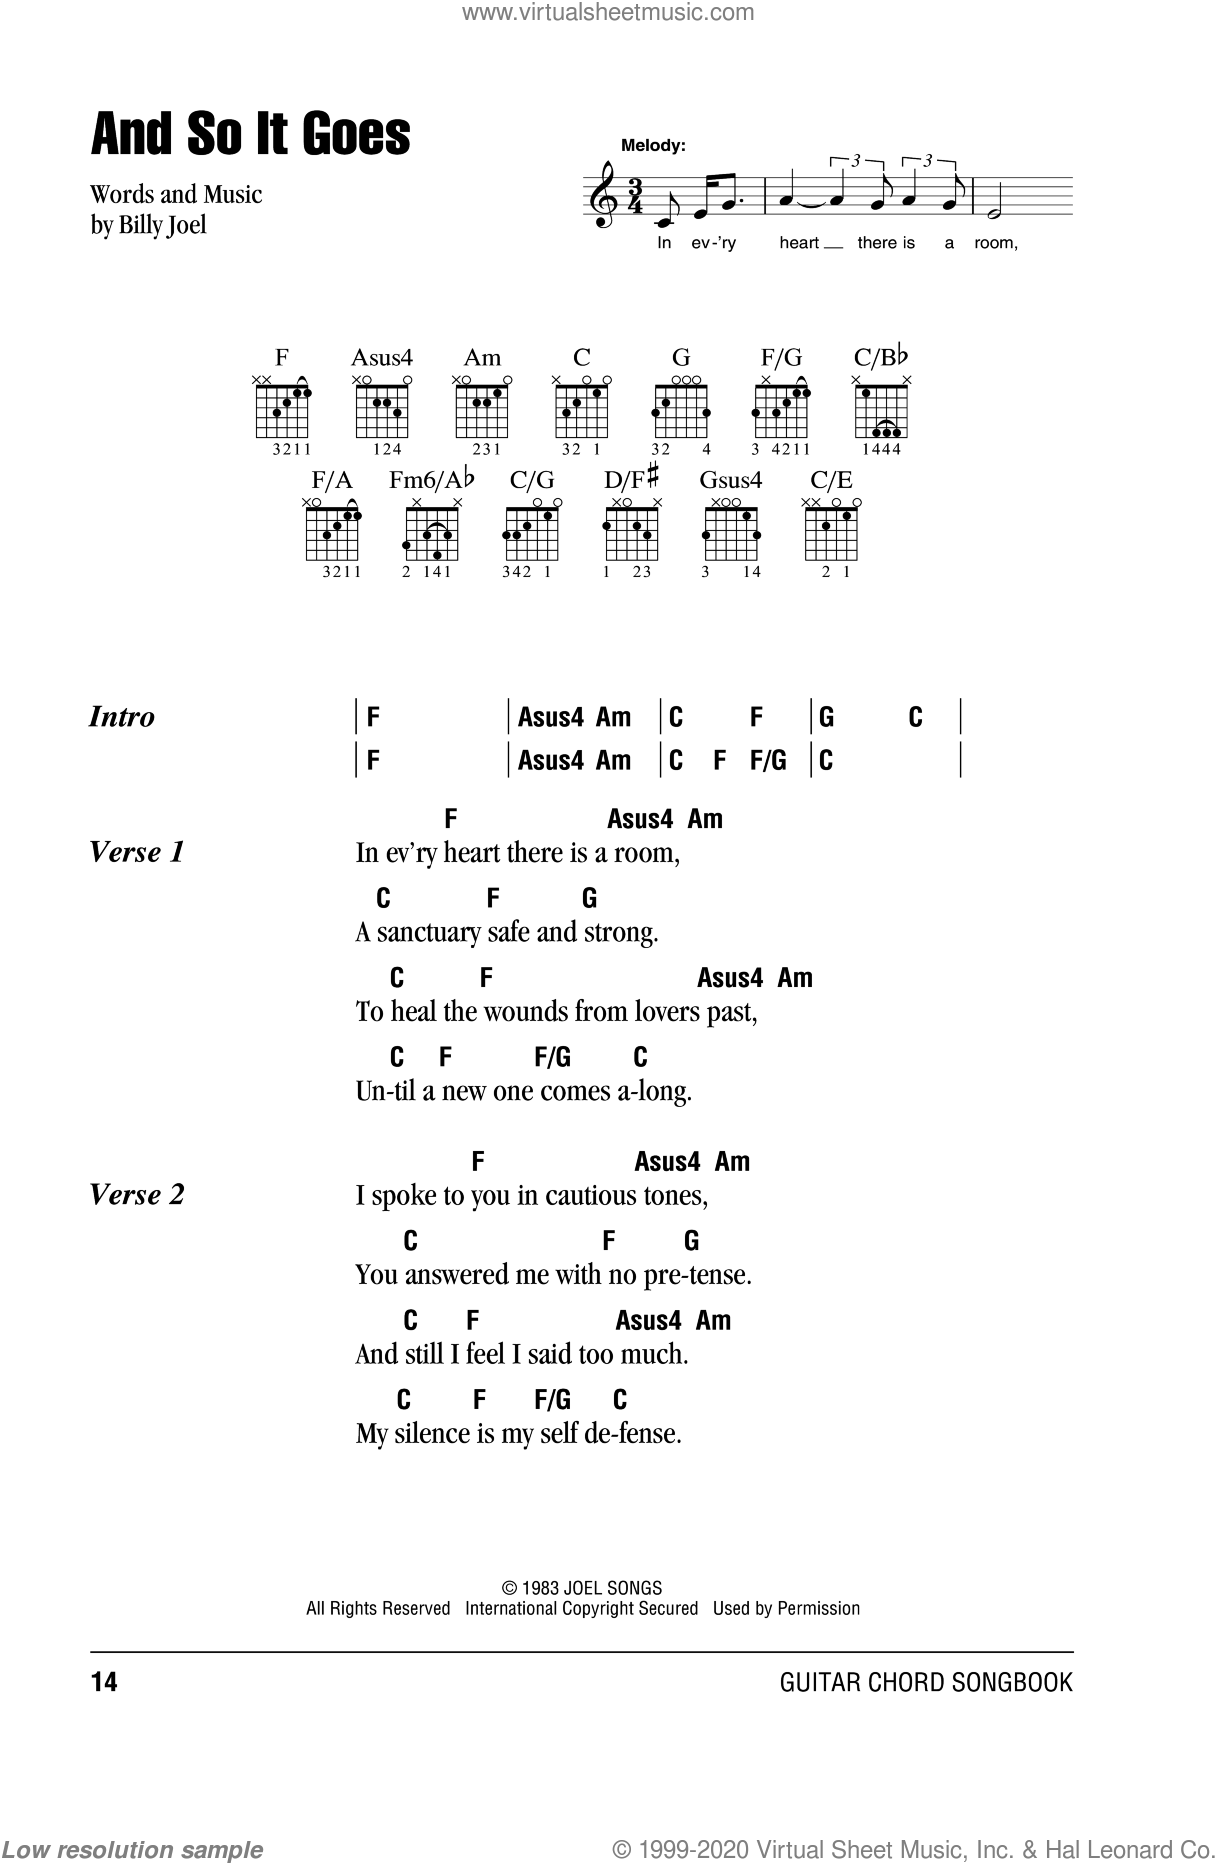 Joel And So It Goes Sheet Music For Guitar Chords Pdf